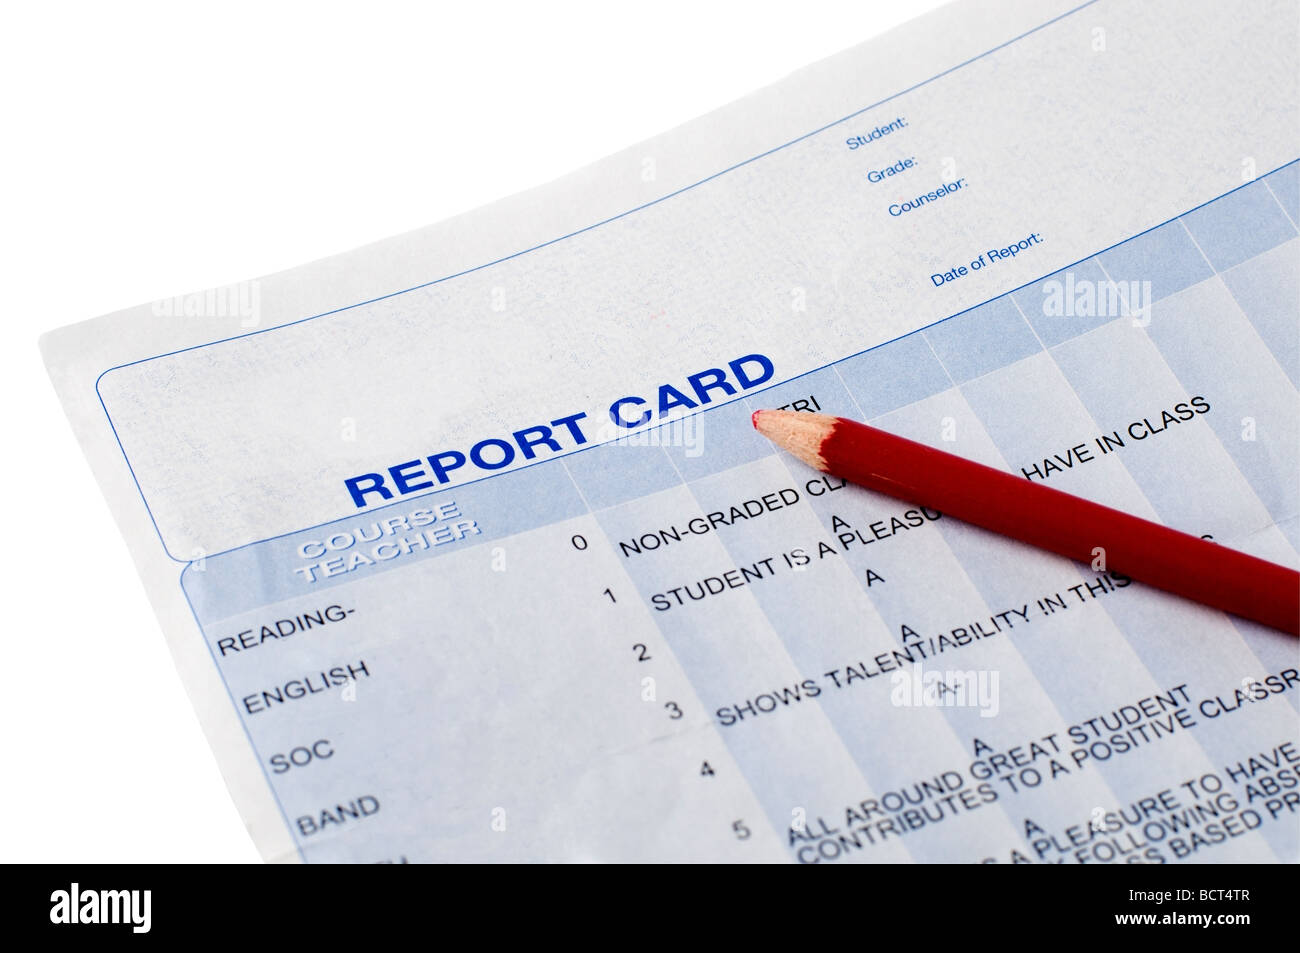 Closeup of a report card and red pencil - Stock Image